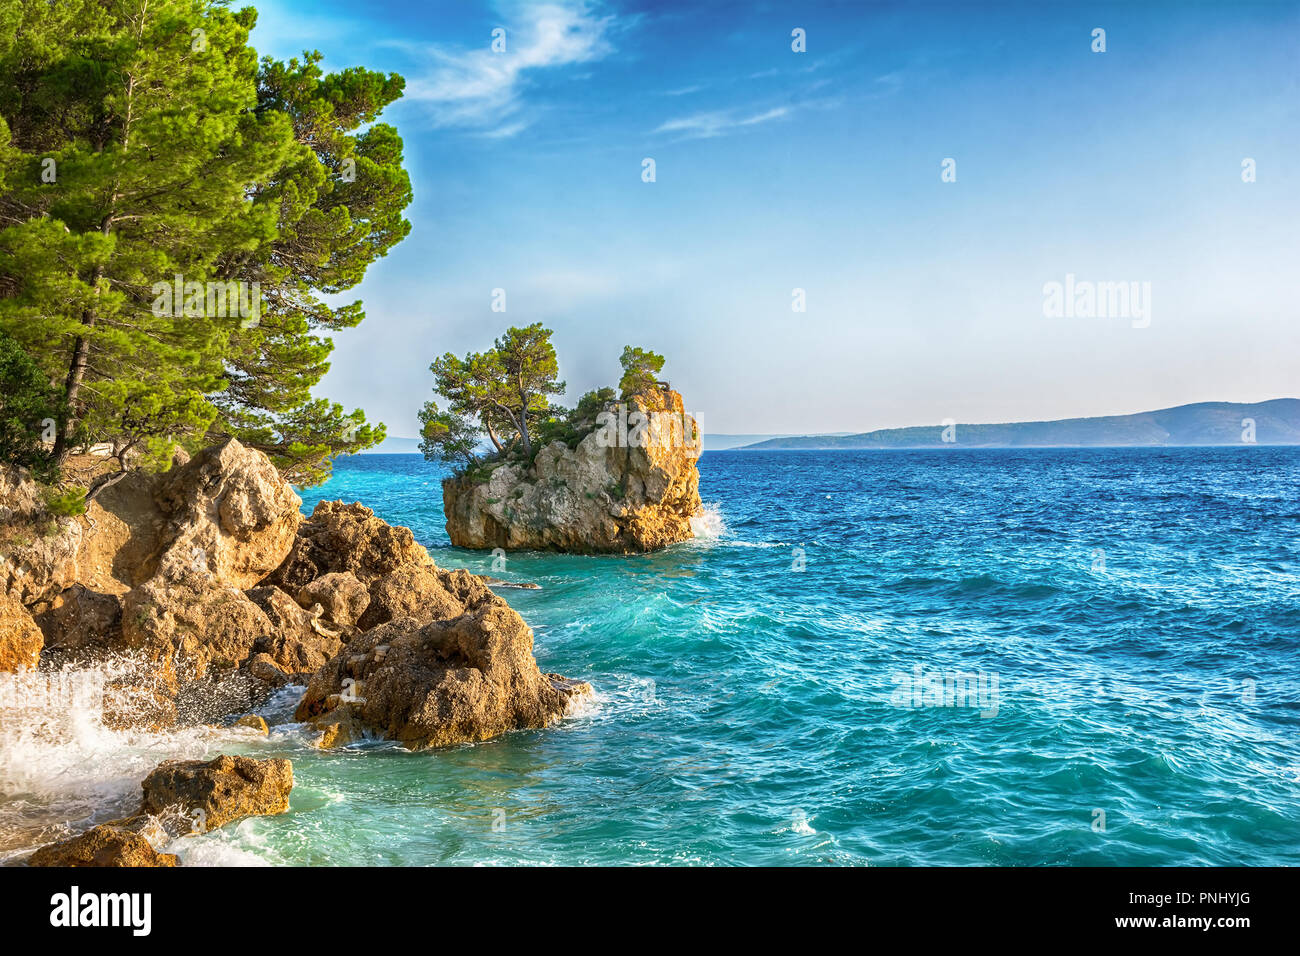 Beautiful Punta Rata beach in Brela, Makarska Riviera, Dalmatia, Croatia. Travel resort background. Summer vacatioan. Copy space. Stock Photo